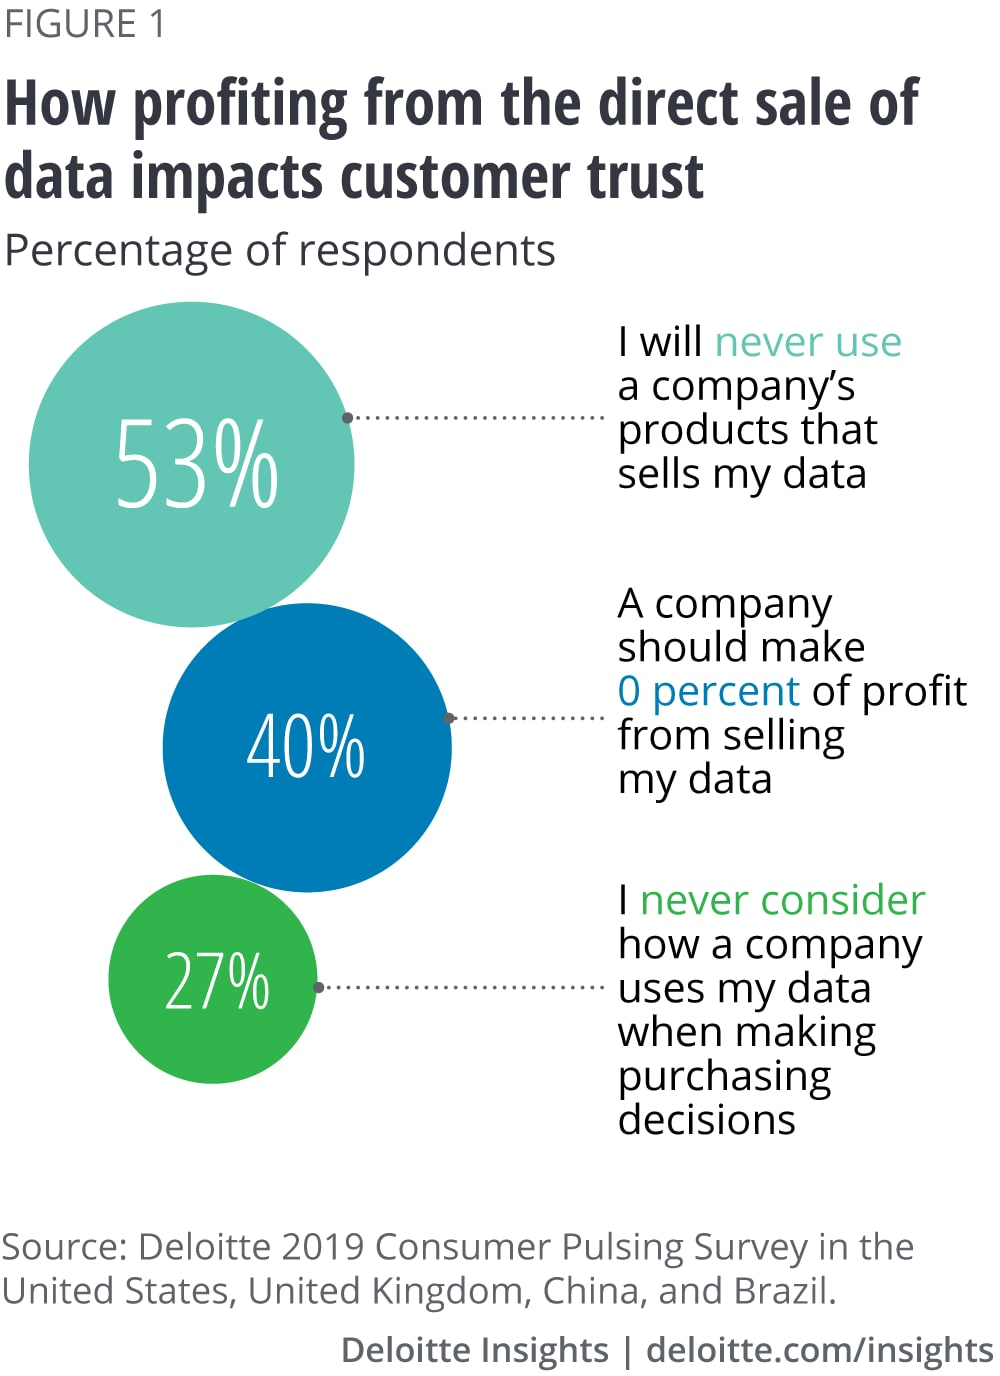 How profiting from the direct sale of data impacts customer trust